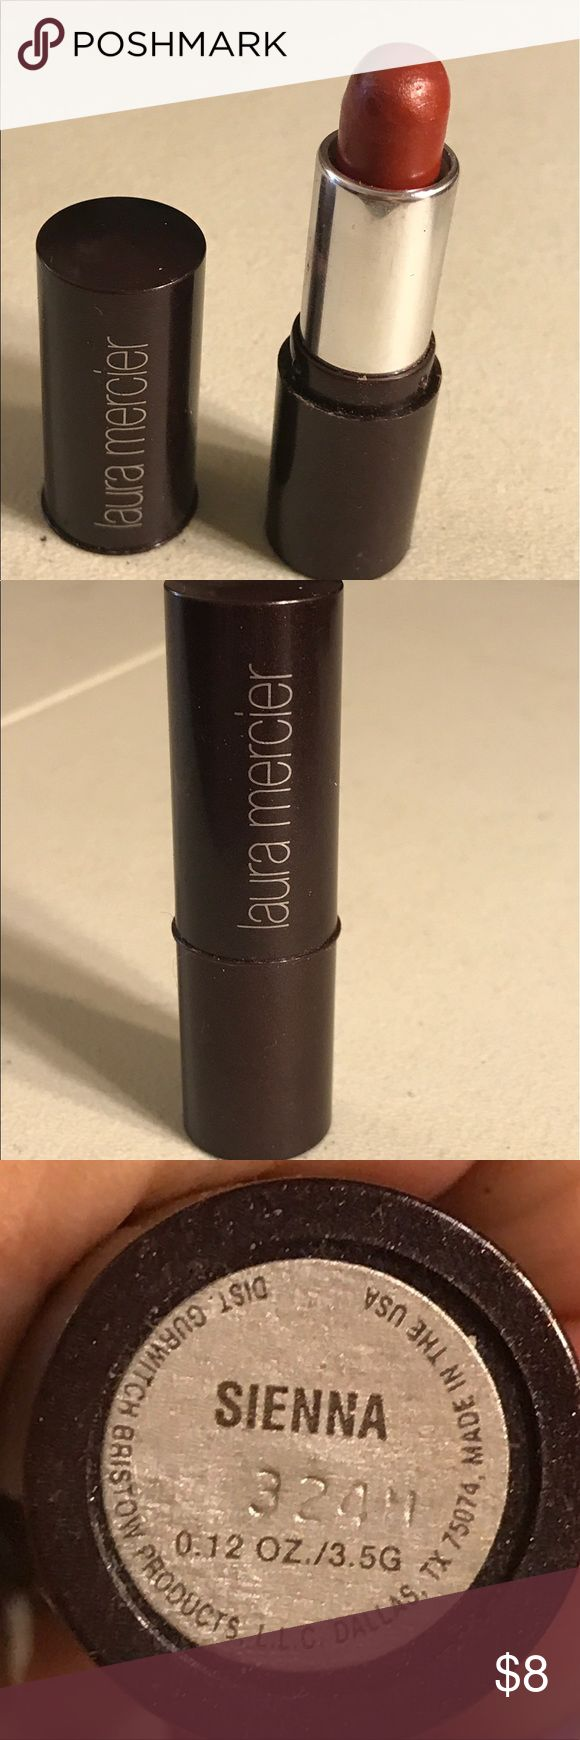 Laura Mercier lipstick Laura Mercier lipstick in color sienna, used. Thanks for checking out Luxury1cosmetics!! Offers are welcomed, bundles are discounted!! laura mercier Makeup Lipstick